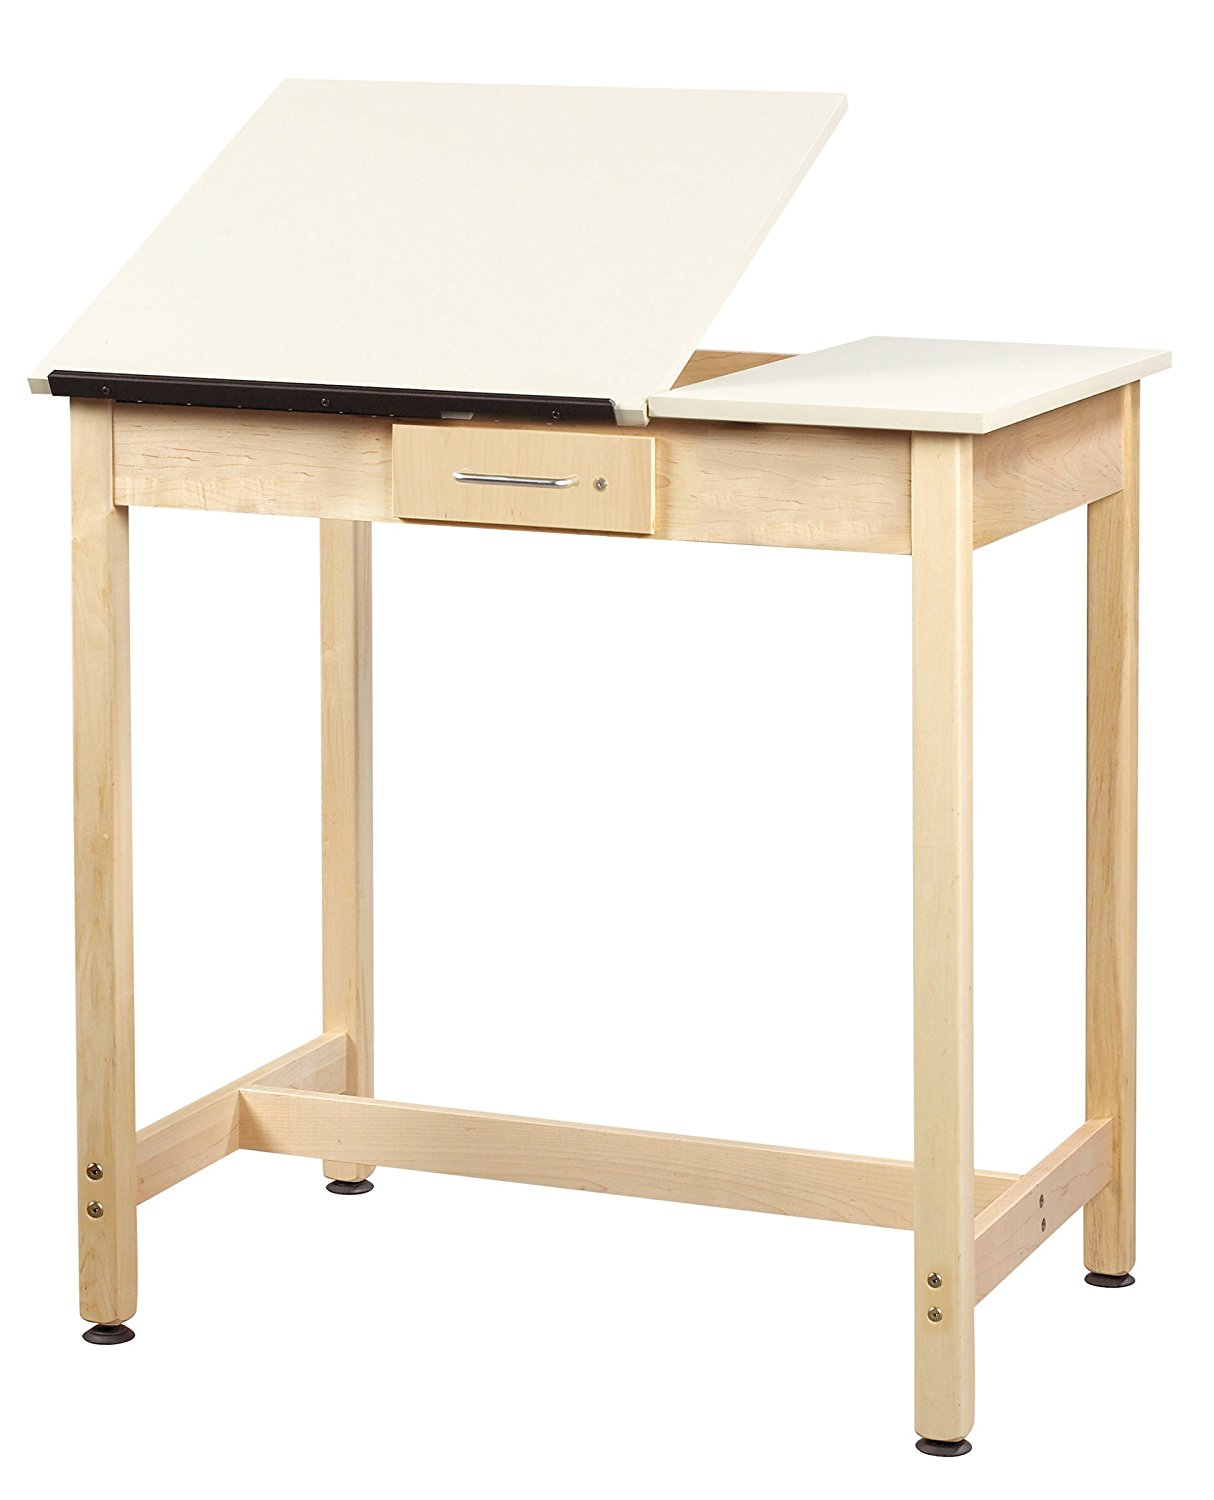 """Diversified Woodcrafts DT-3SA37 UV Finish Solid Maple Wood Art/Drafting Table with 2 Piece Top, 36"""" Width x 36"""" Height x 24"""" Depth"""